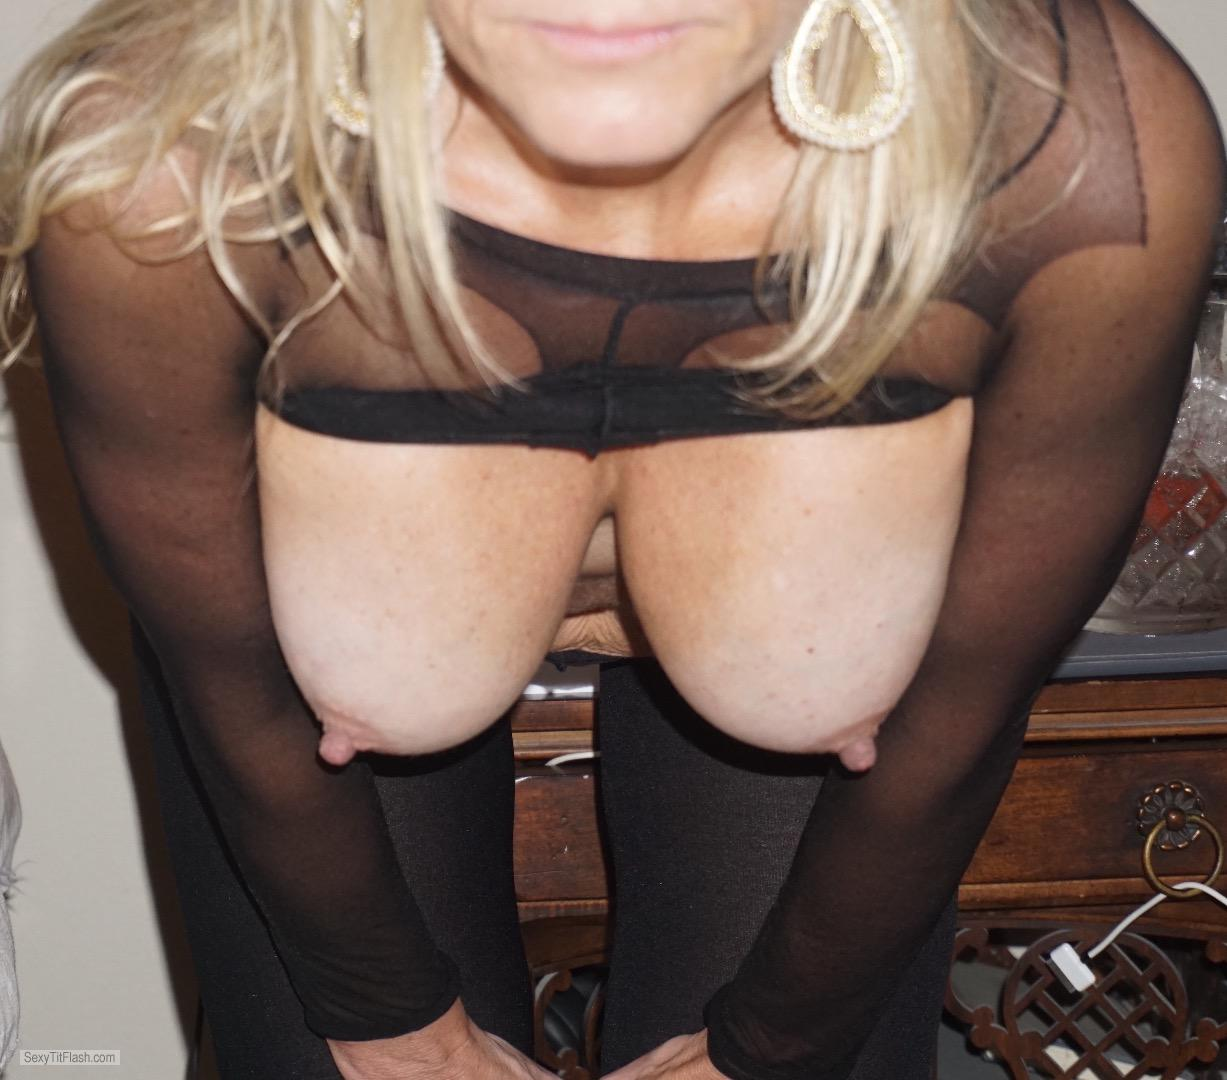 Tit Flash: My Big Tits - Blondie Friend from United Kingdom